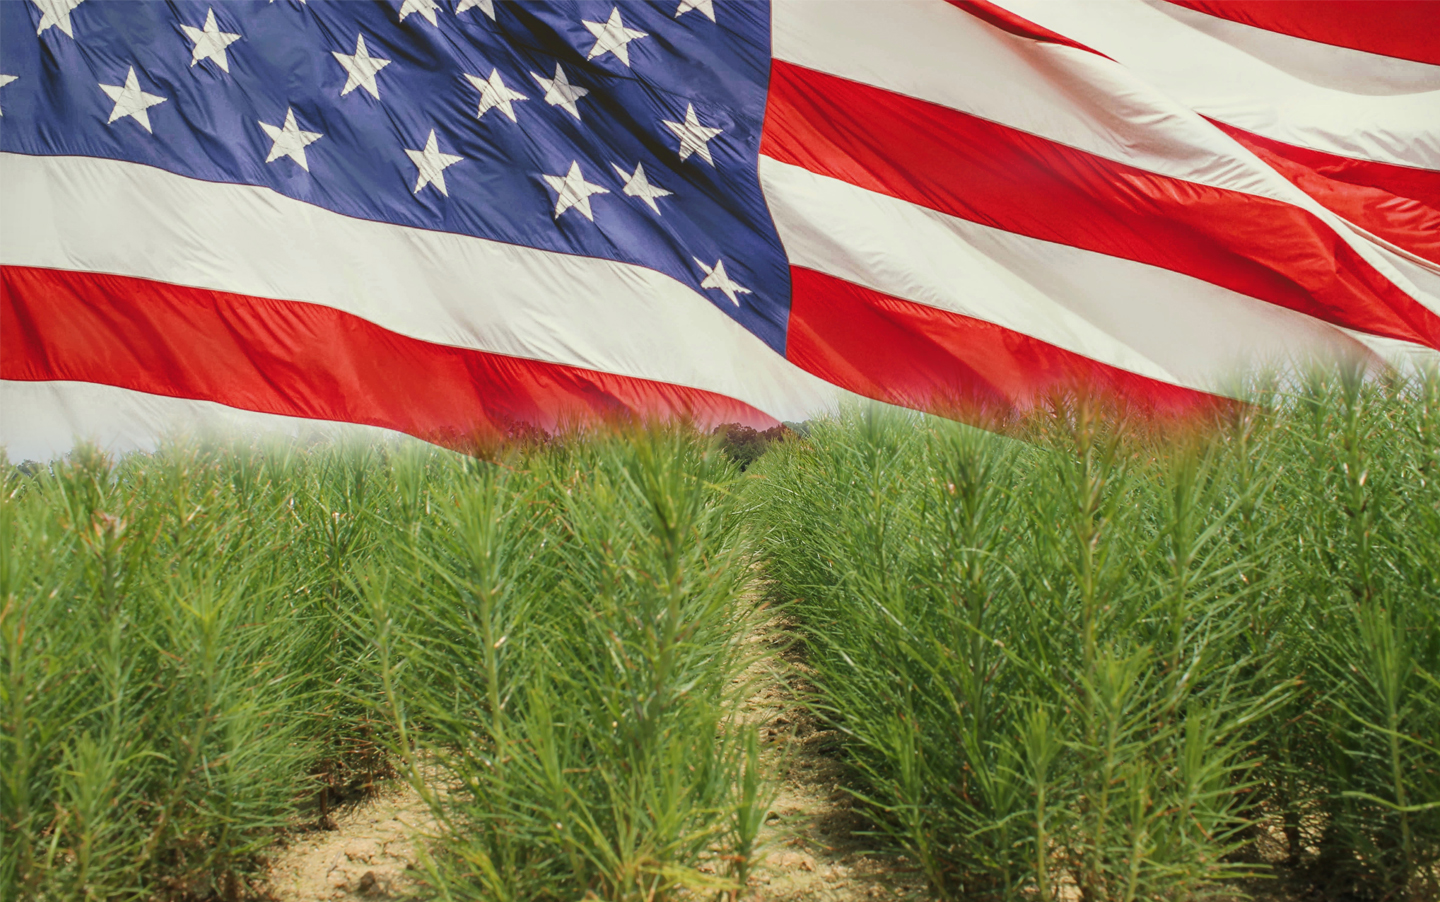 Photo of tree seedlings in foreground with United States flag waving in background